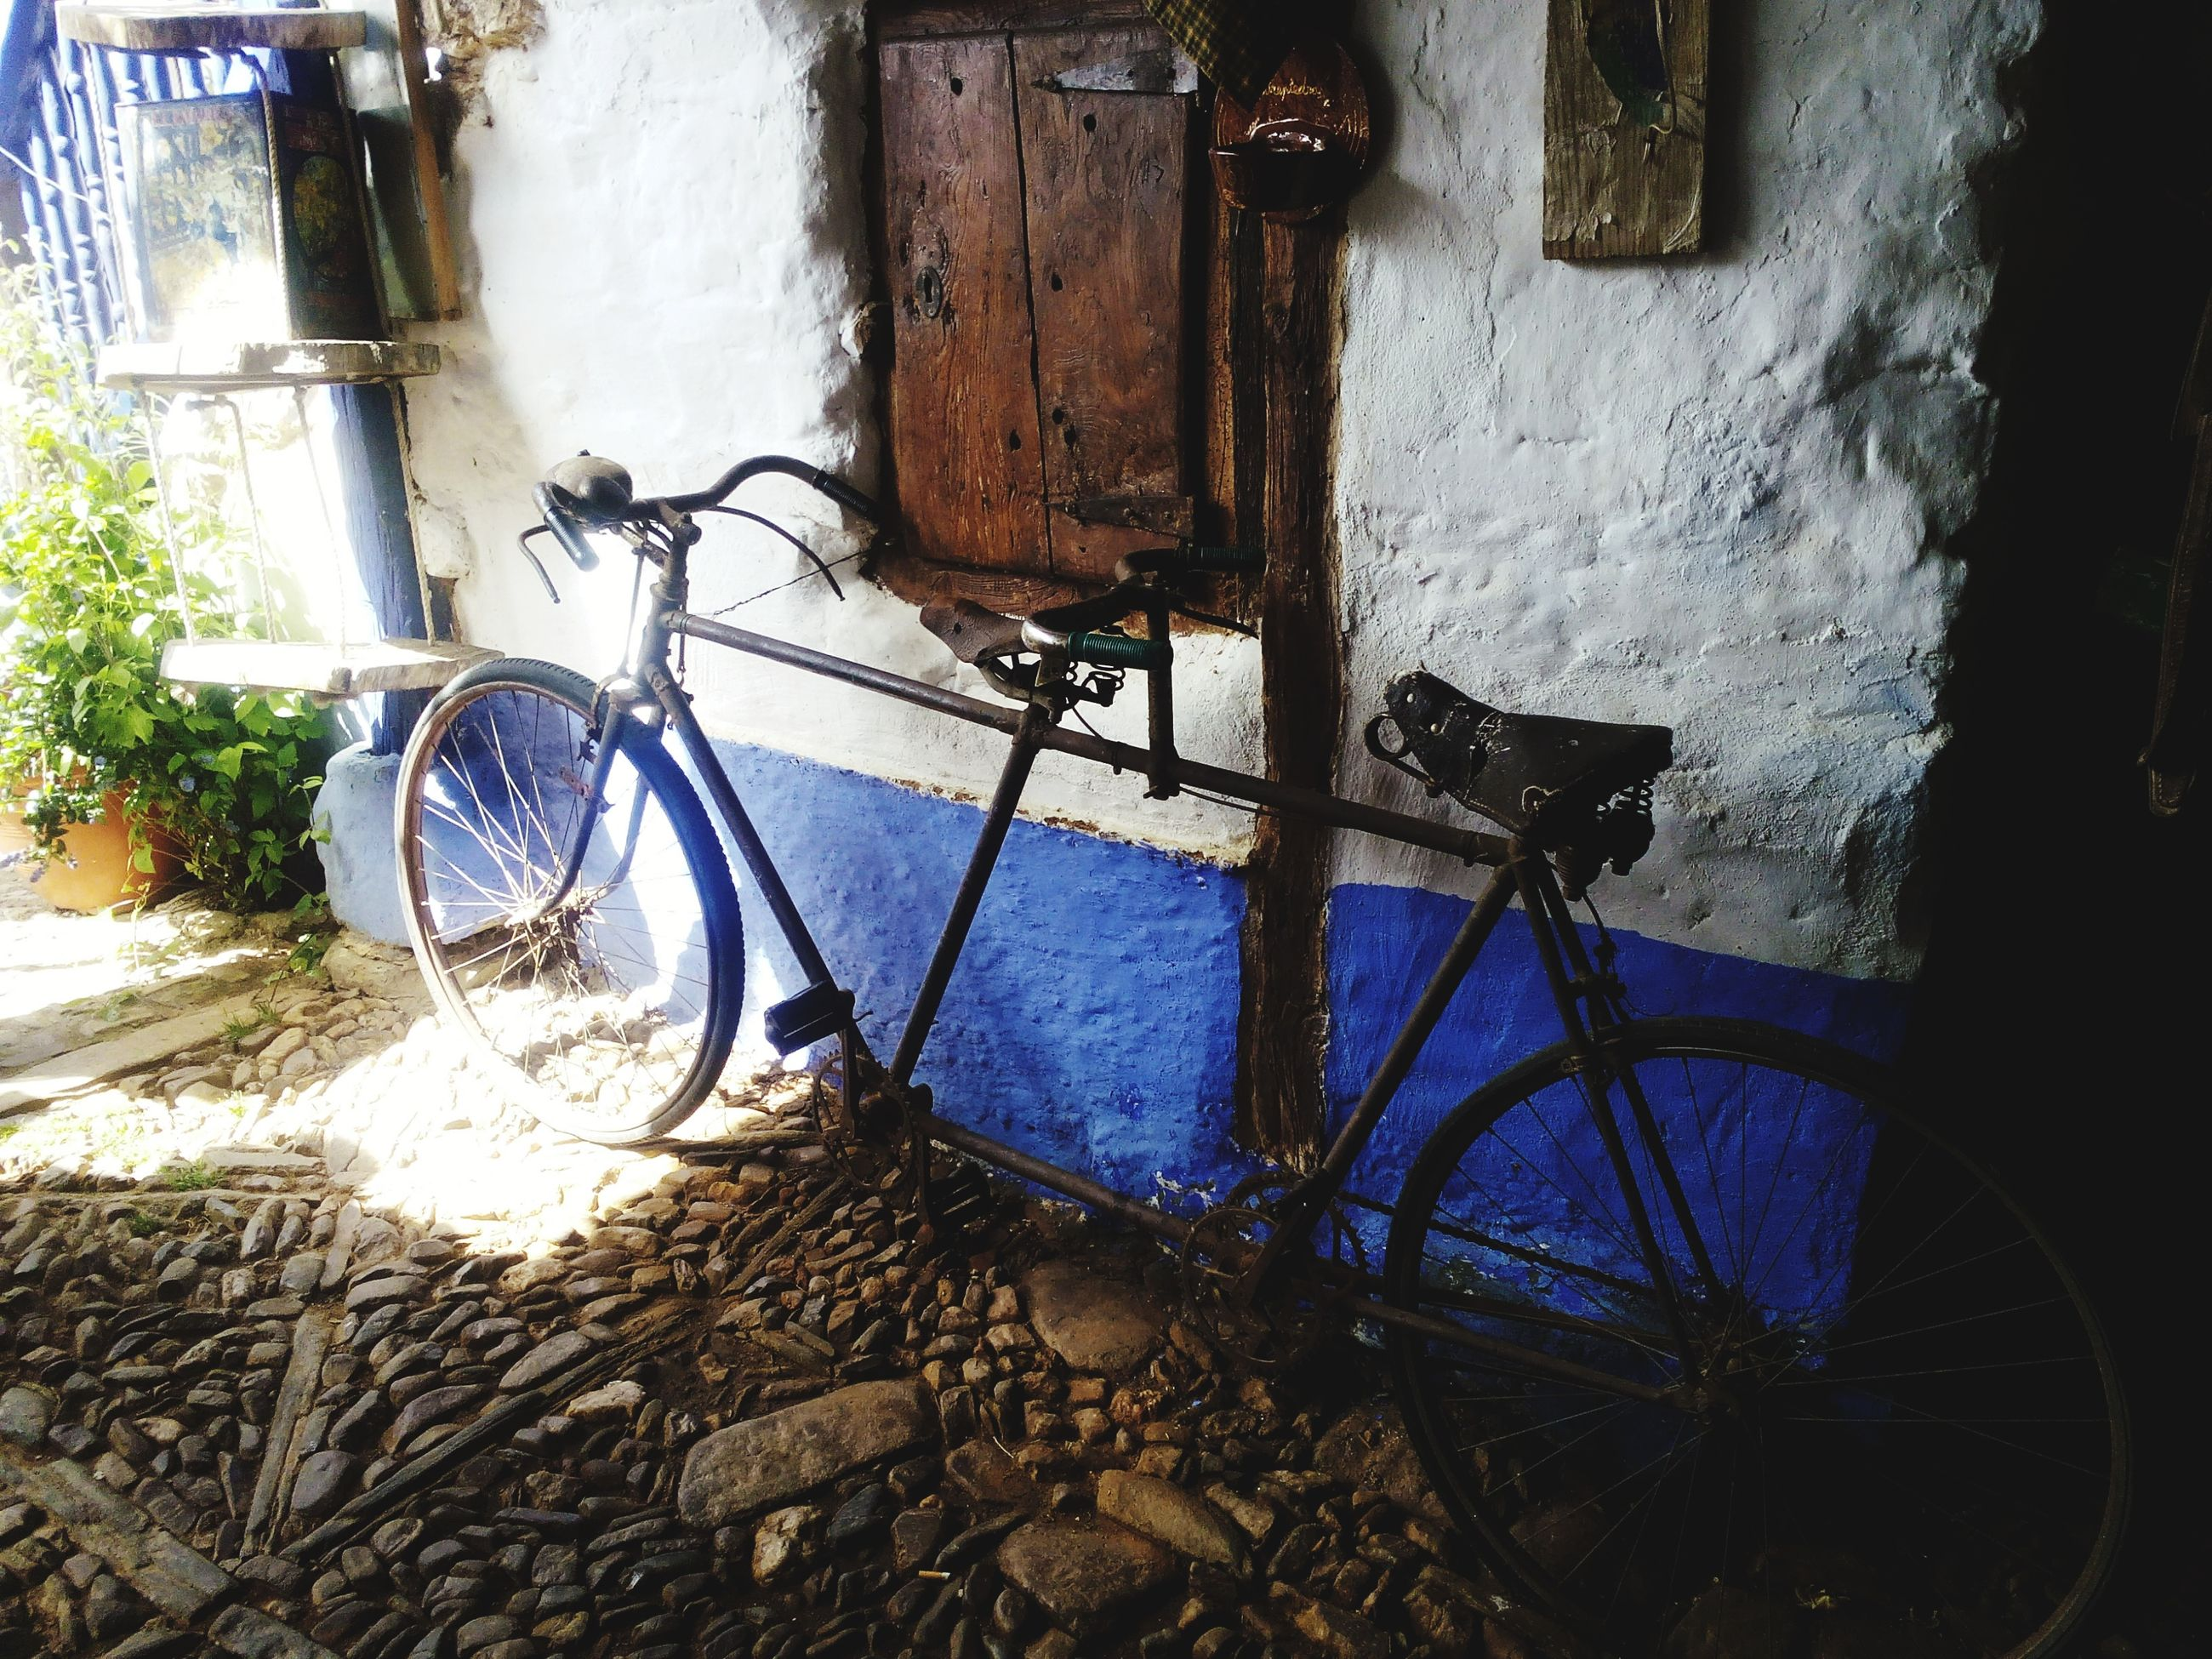 bicycle, mode of transport, built structure, transportation, parked, architecture, stationary, building exterior, parking, land vehicle, metal, wall - building feature, abandoned, old, day, water, no people, sunlight, house, absence